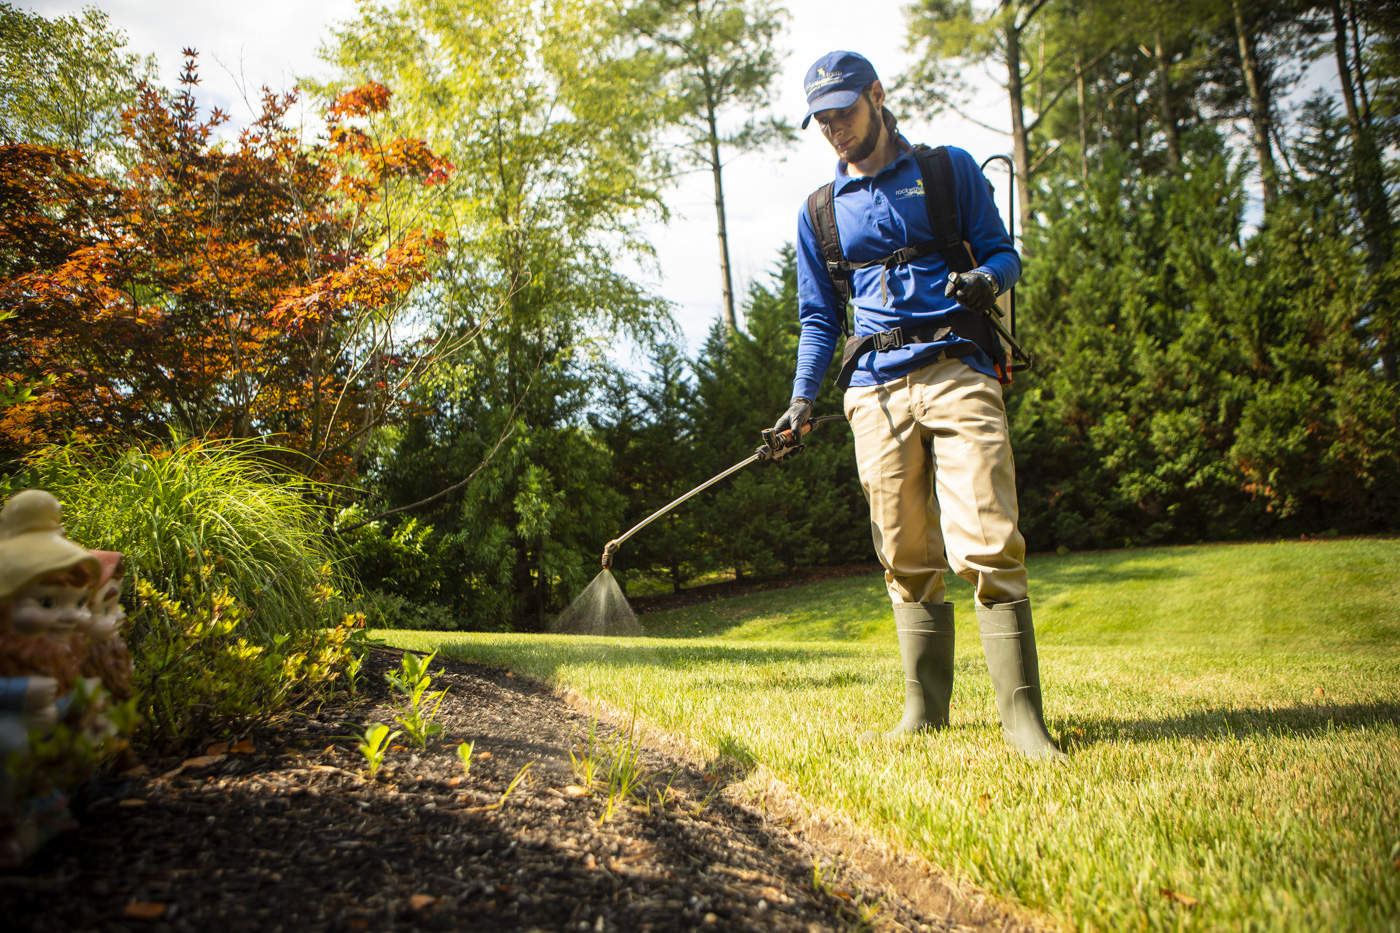 lawn care service technician spraying lawn in Northern Virginia